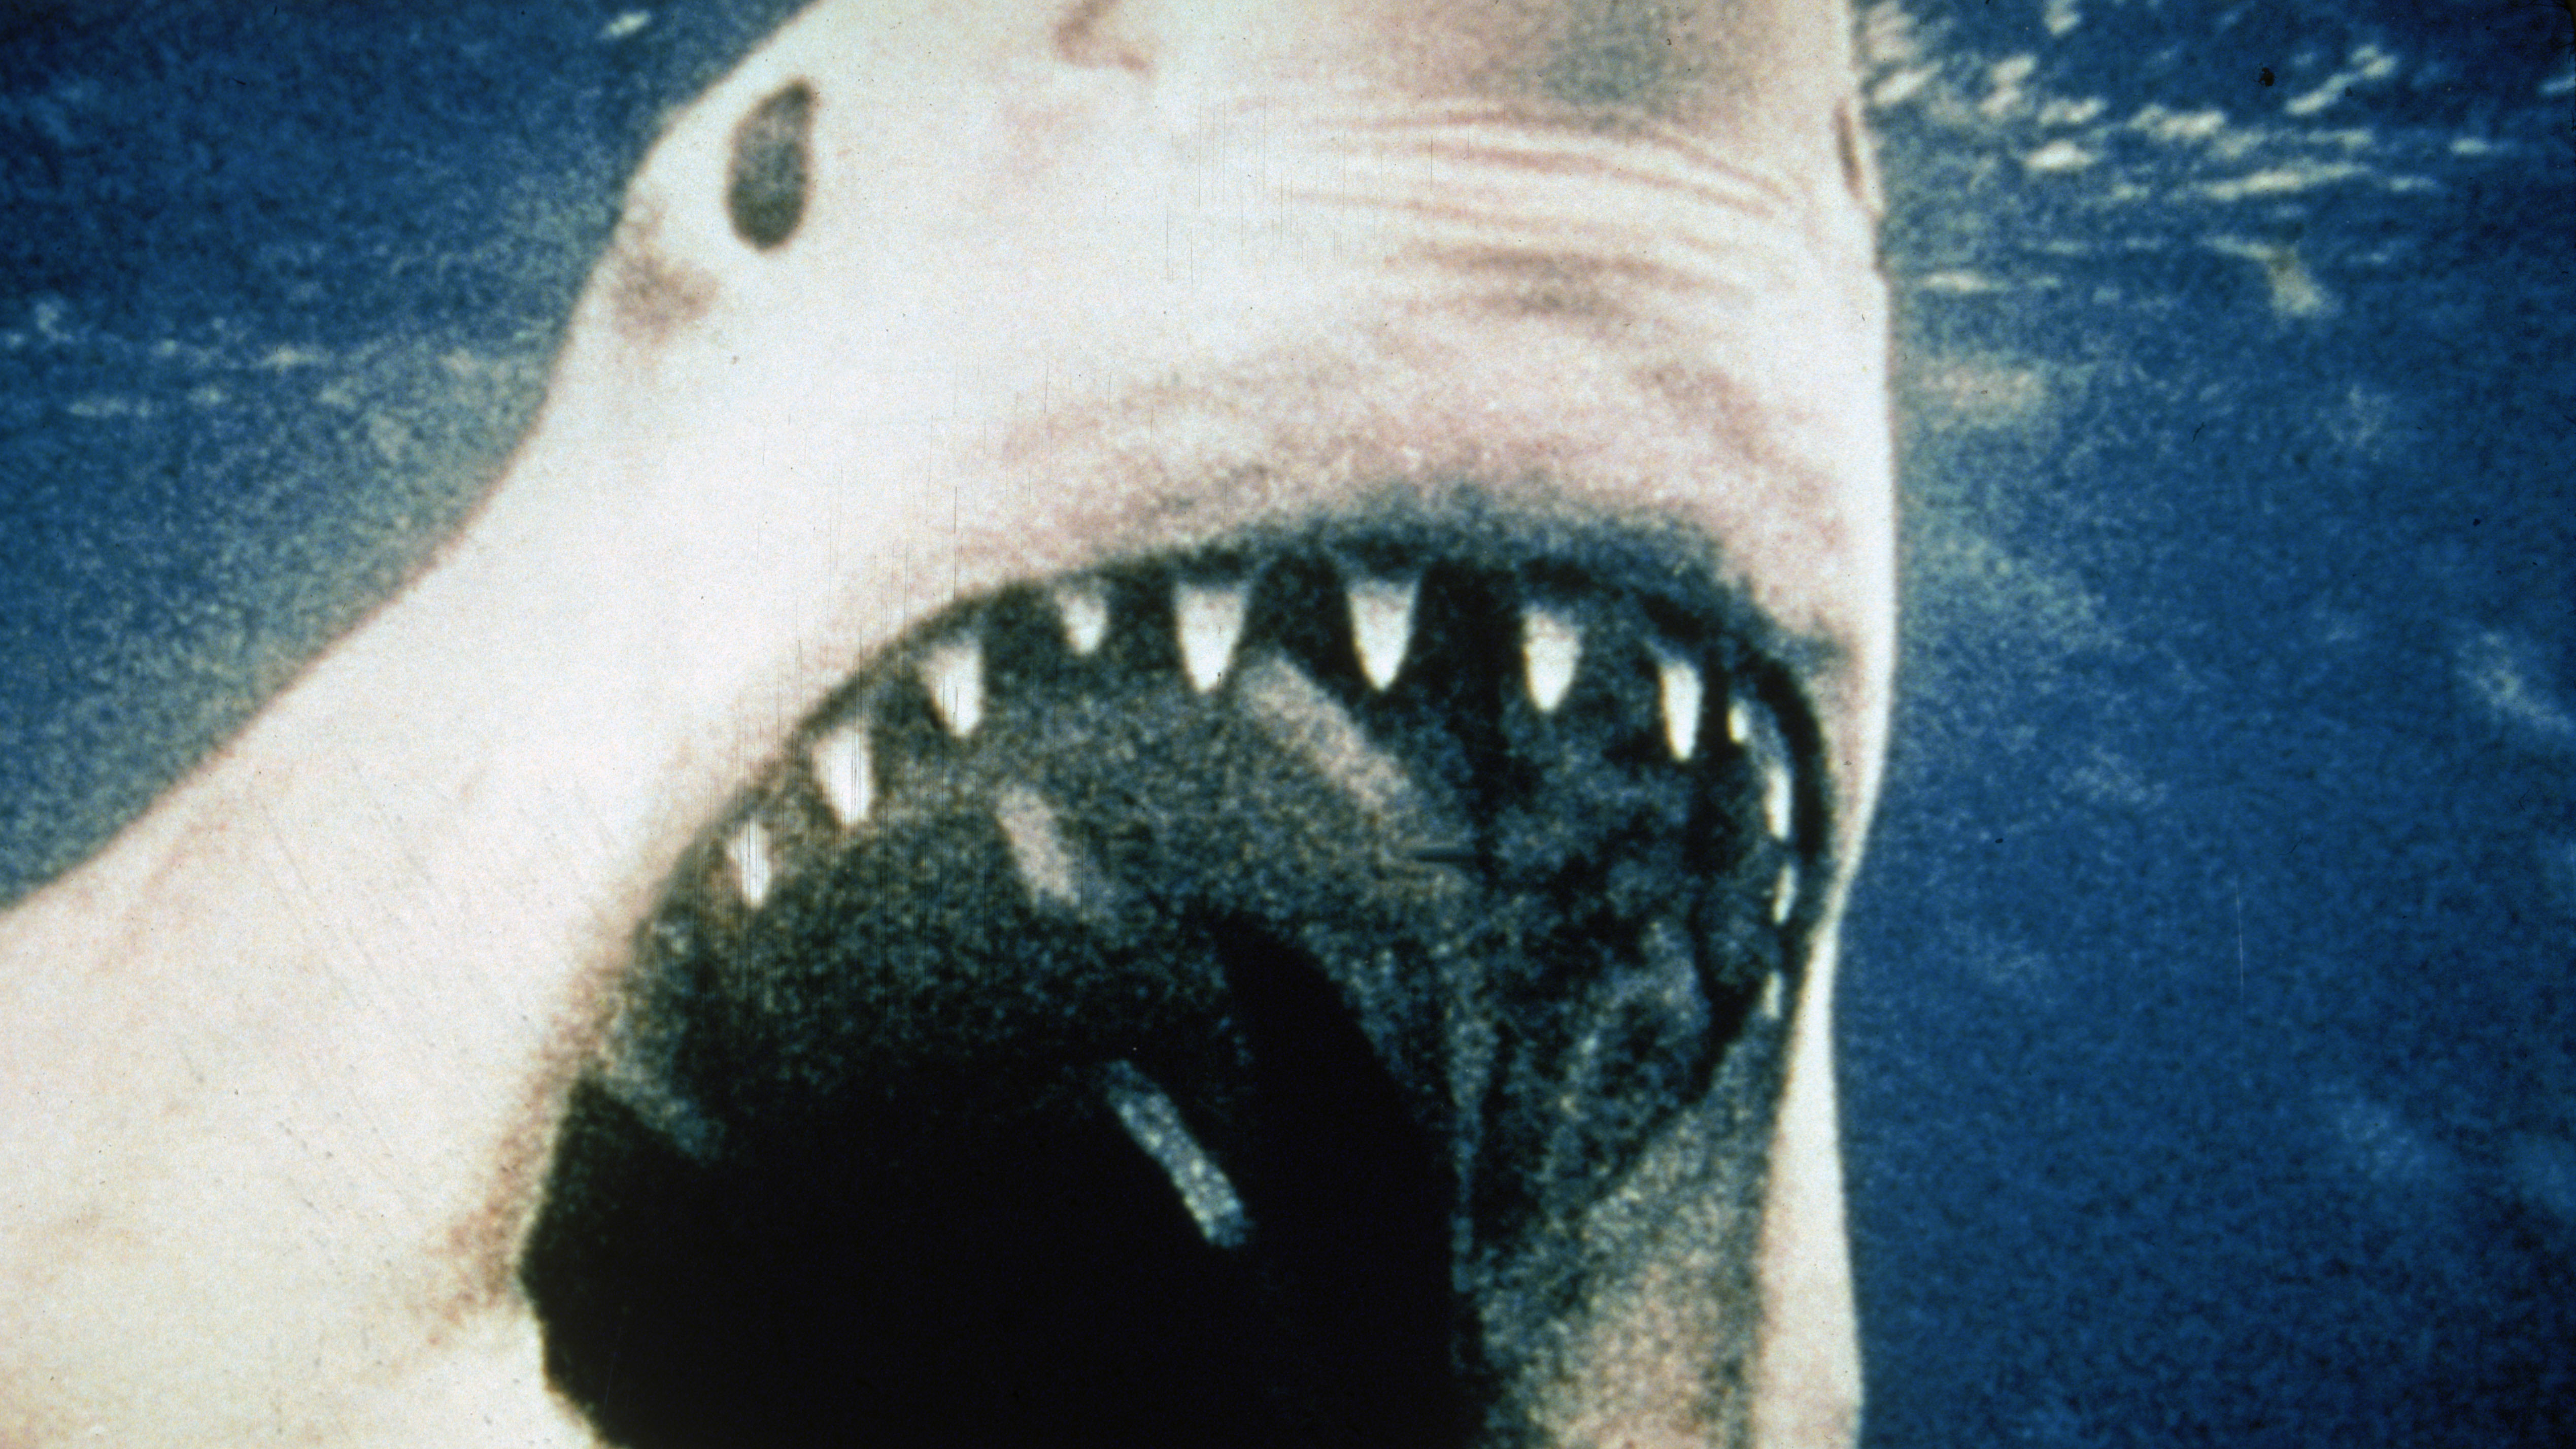 What No 'Jaws' Or: See The Movie Skip The Book